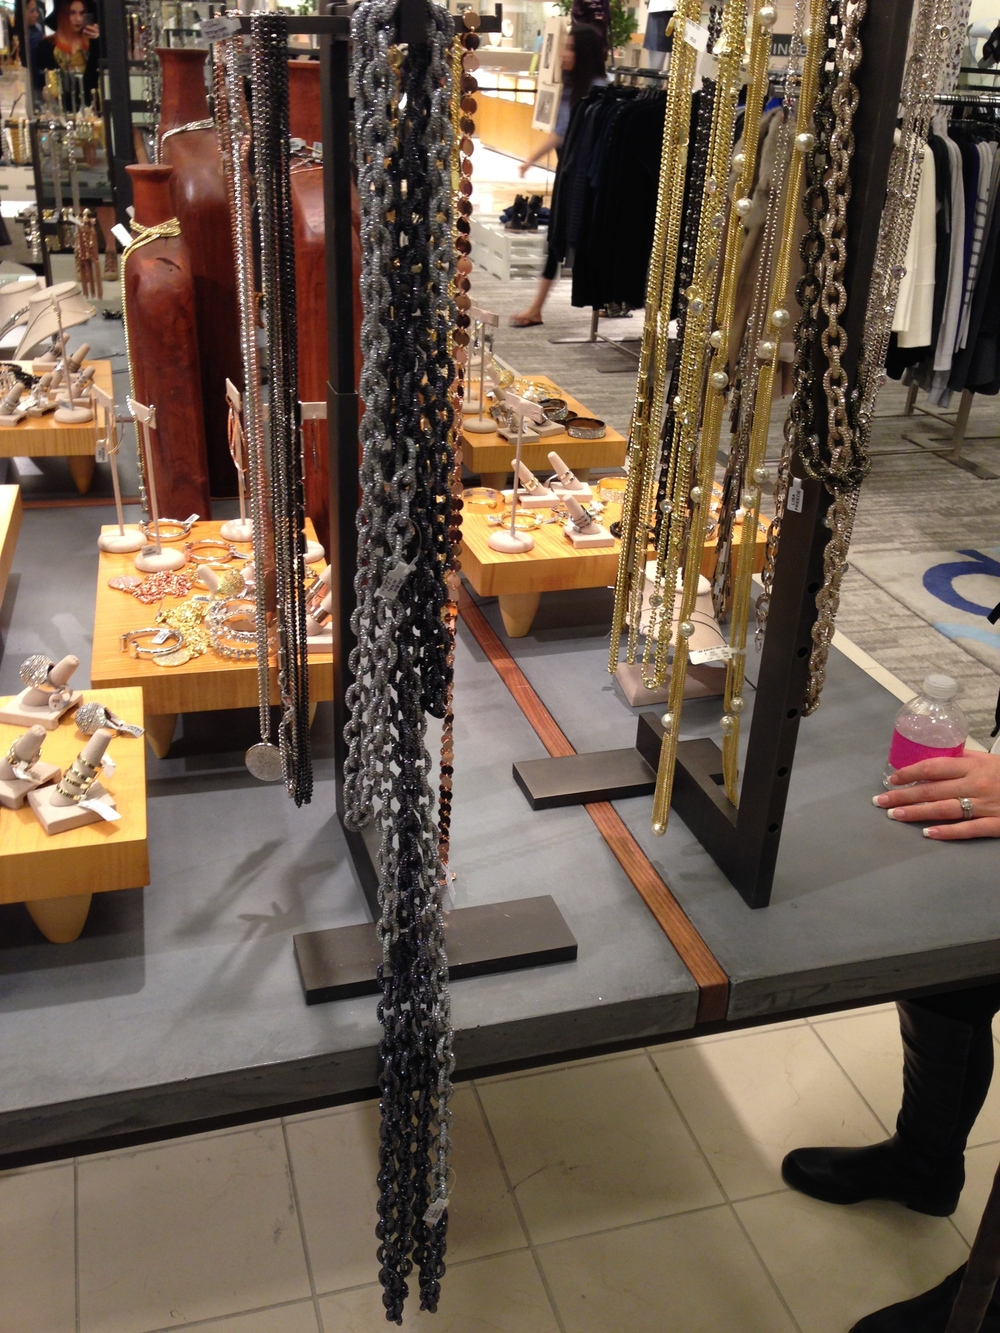 Lisa Freede's jewelry on display at #CUSP in Neiman Marcus! Even you can style yourself like Rihanna with one quick trip!